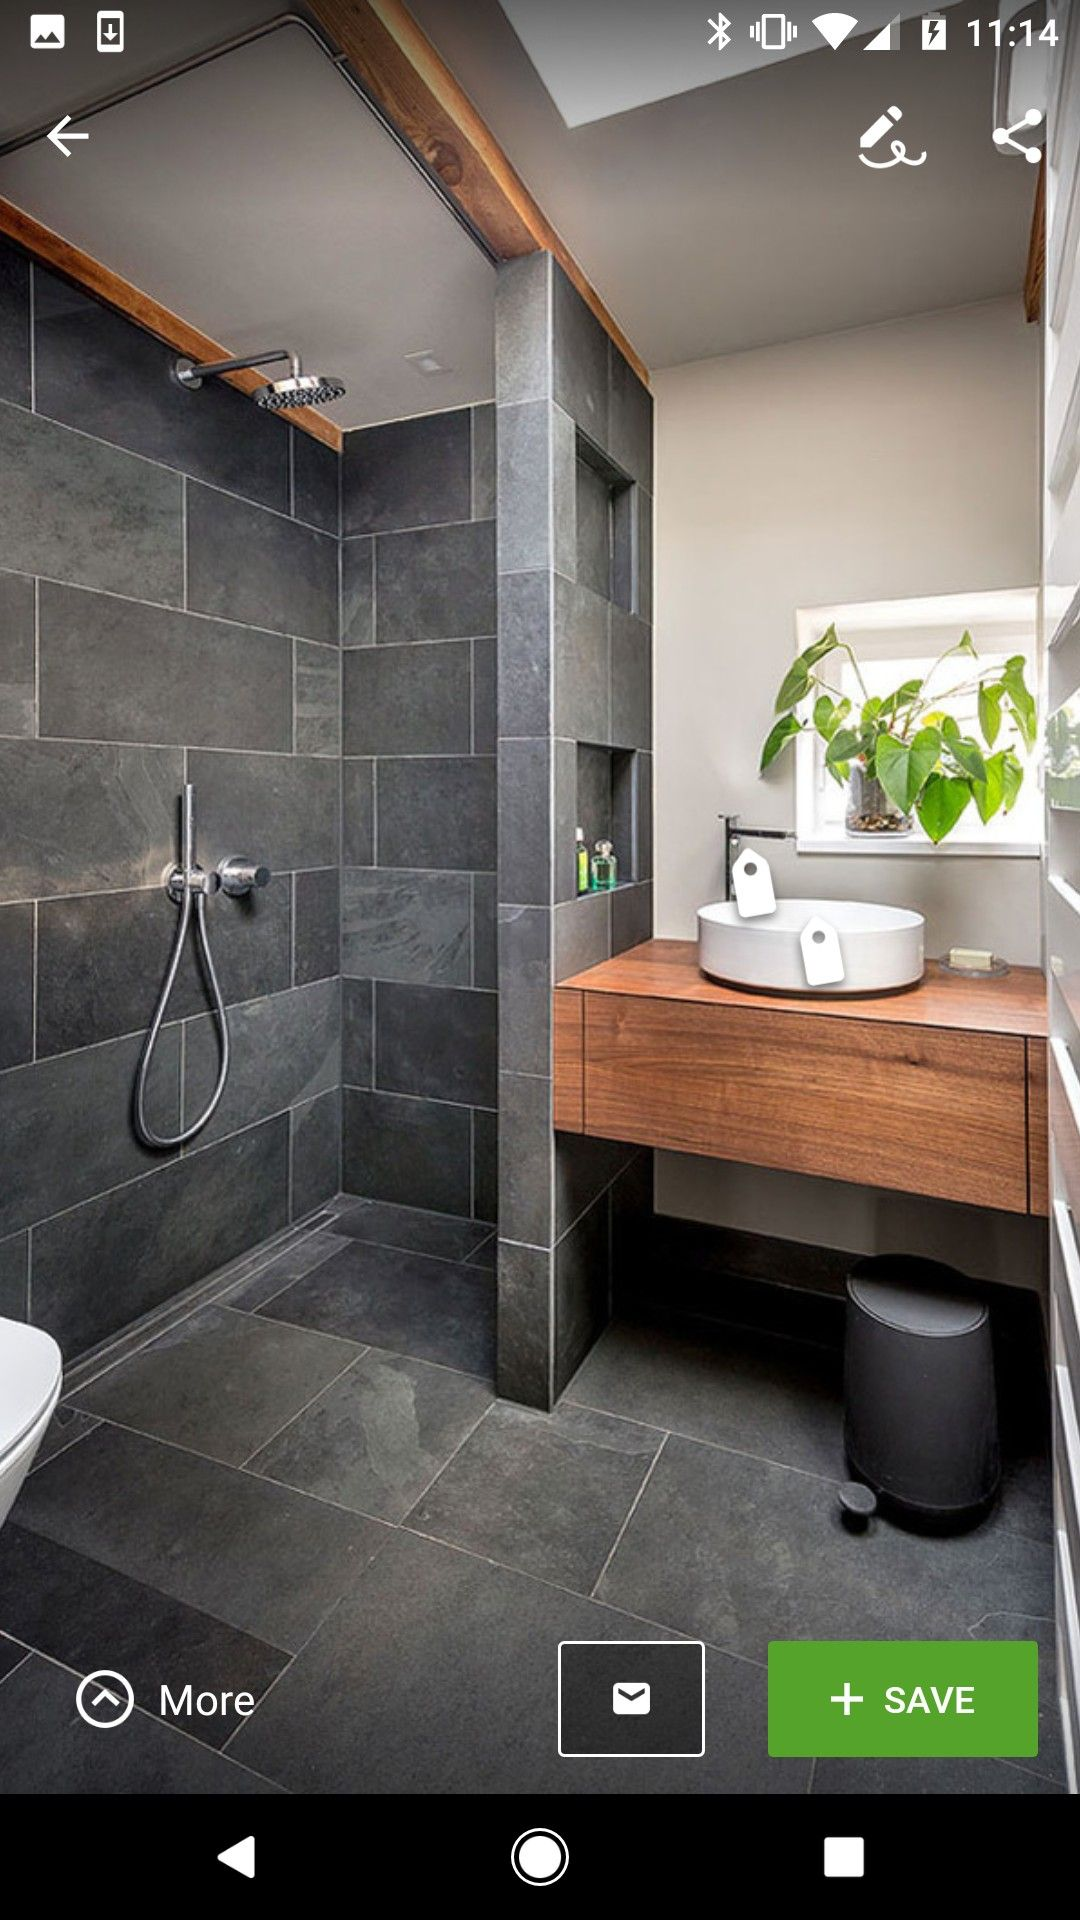 Wet Room Design With Track For Shower Curtain Up High And Hidden